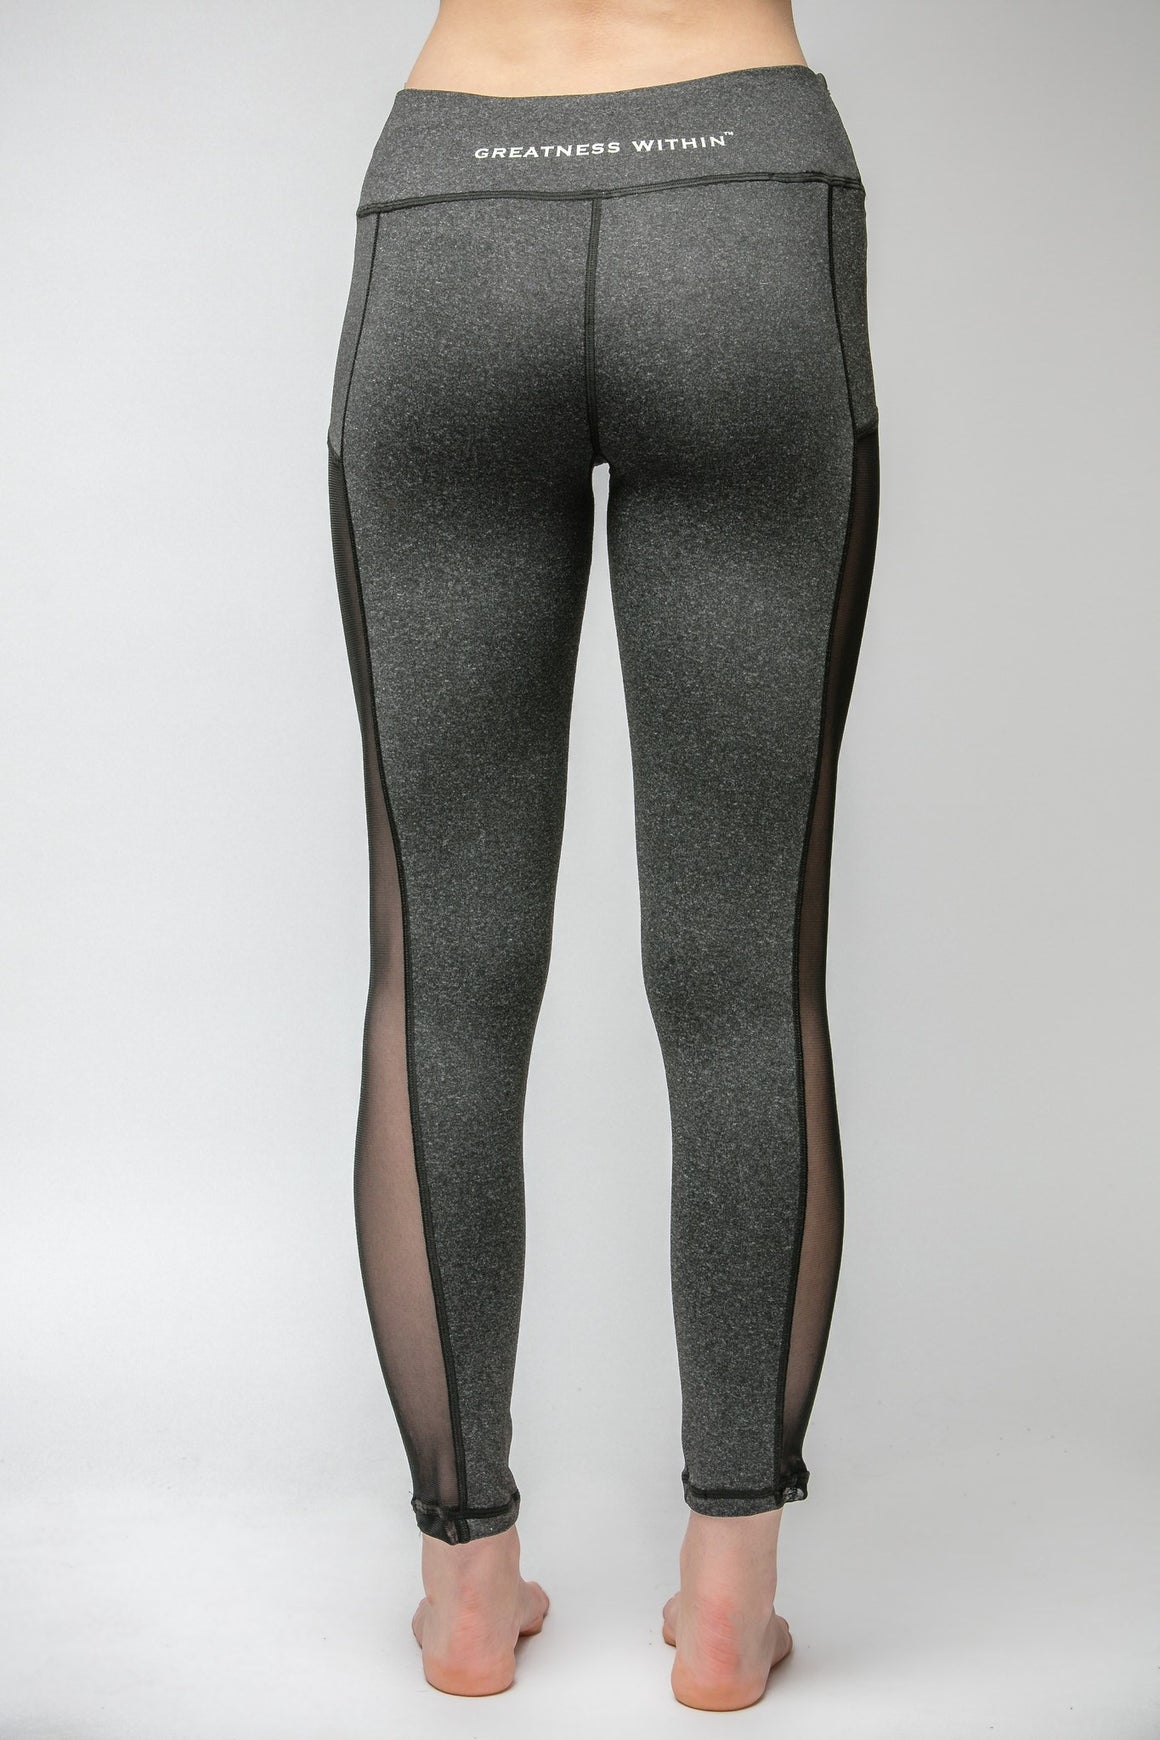 GW Full-Mesh Leggings - Greatness Within